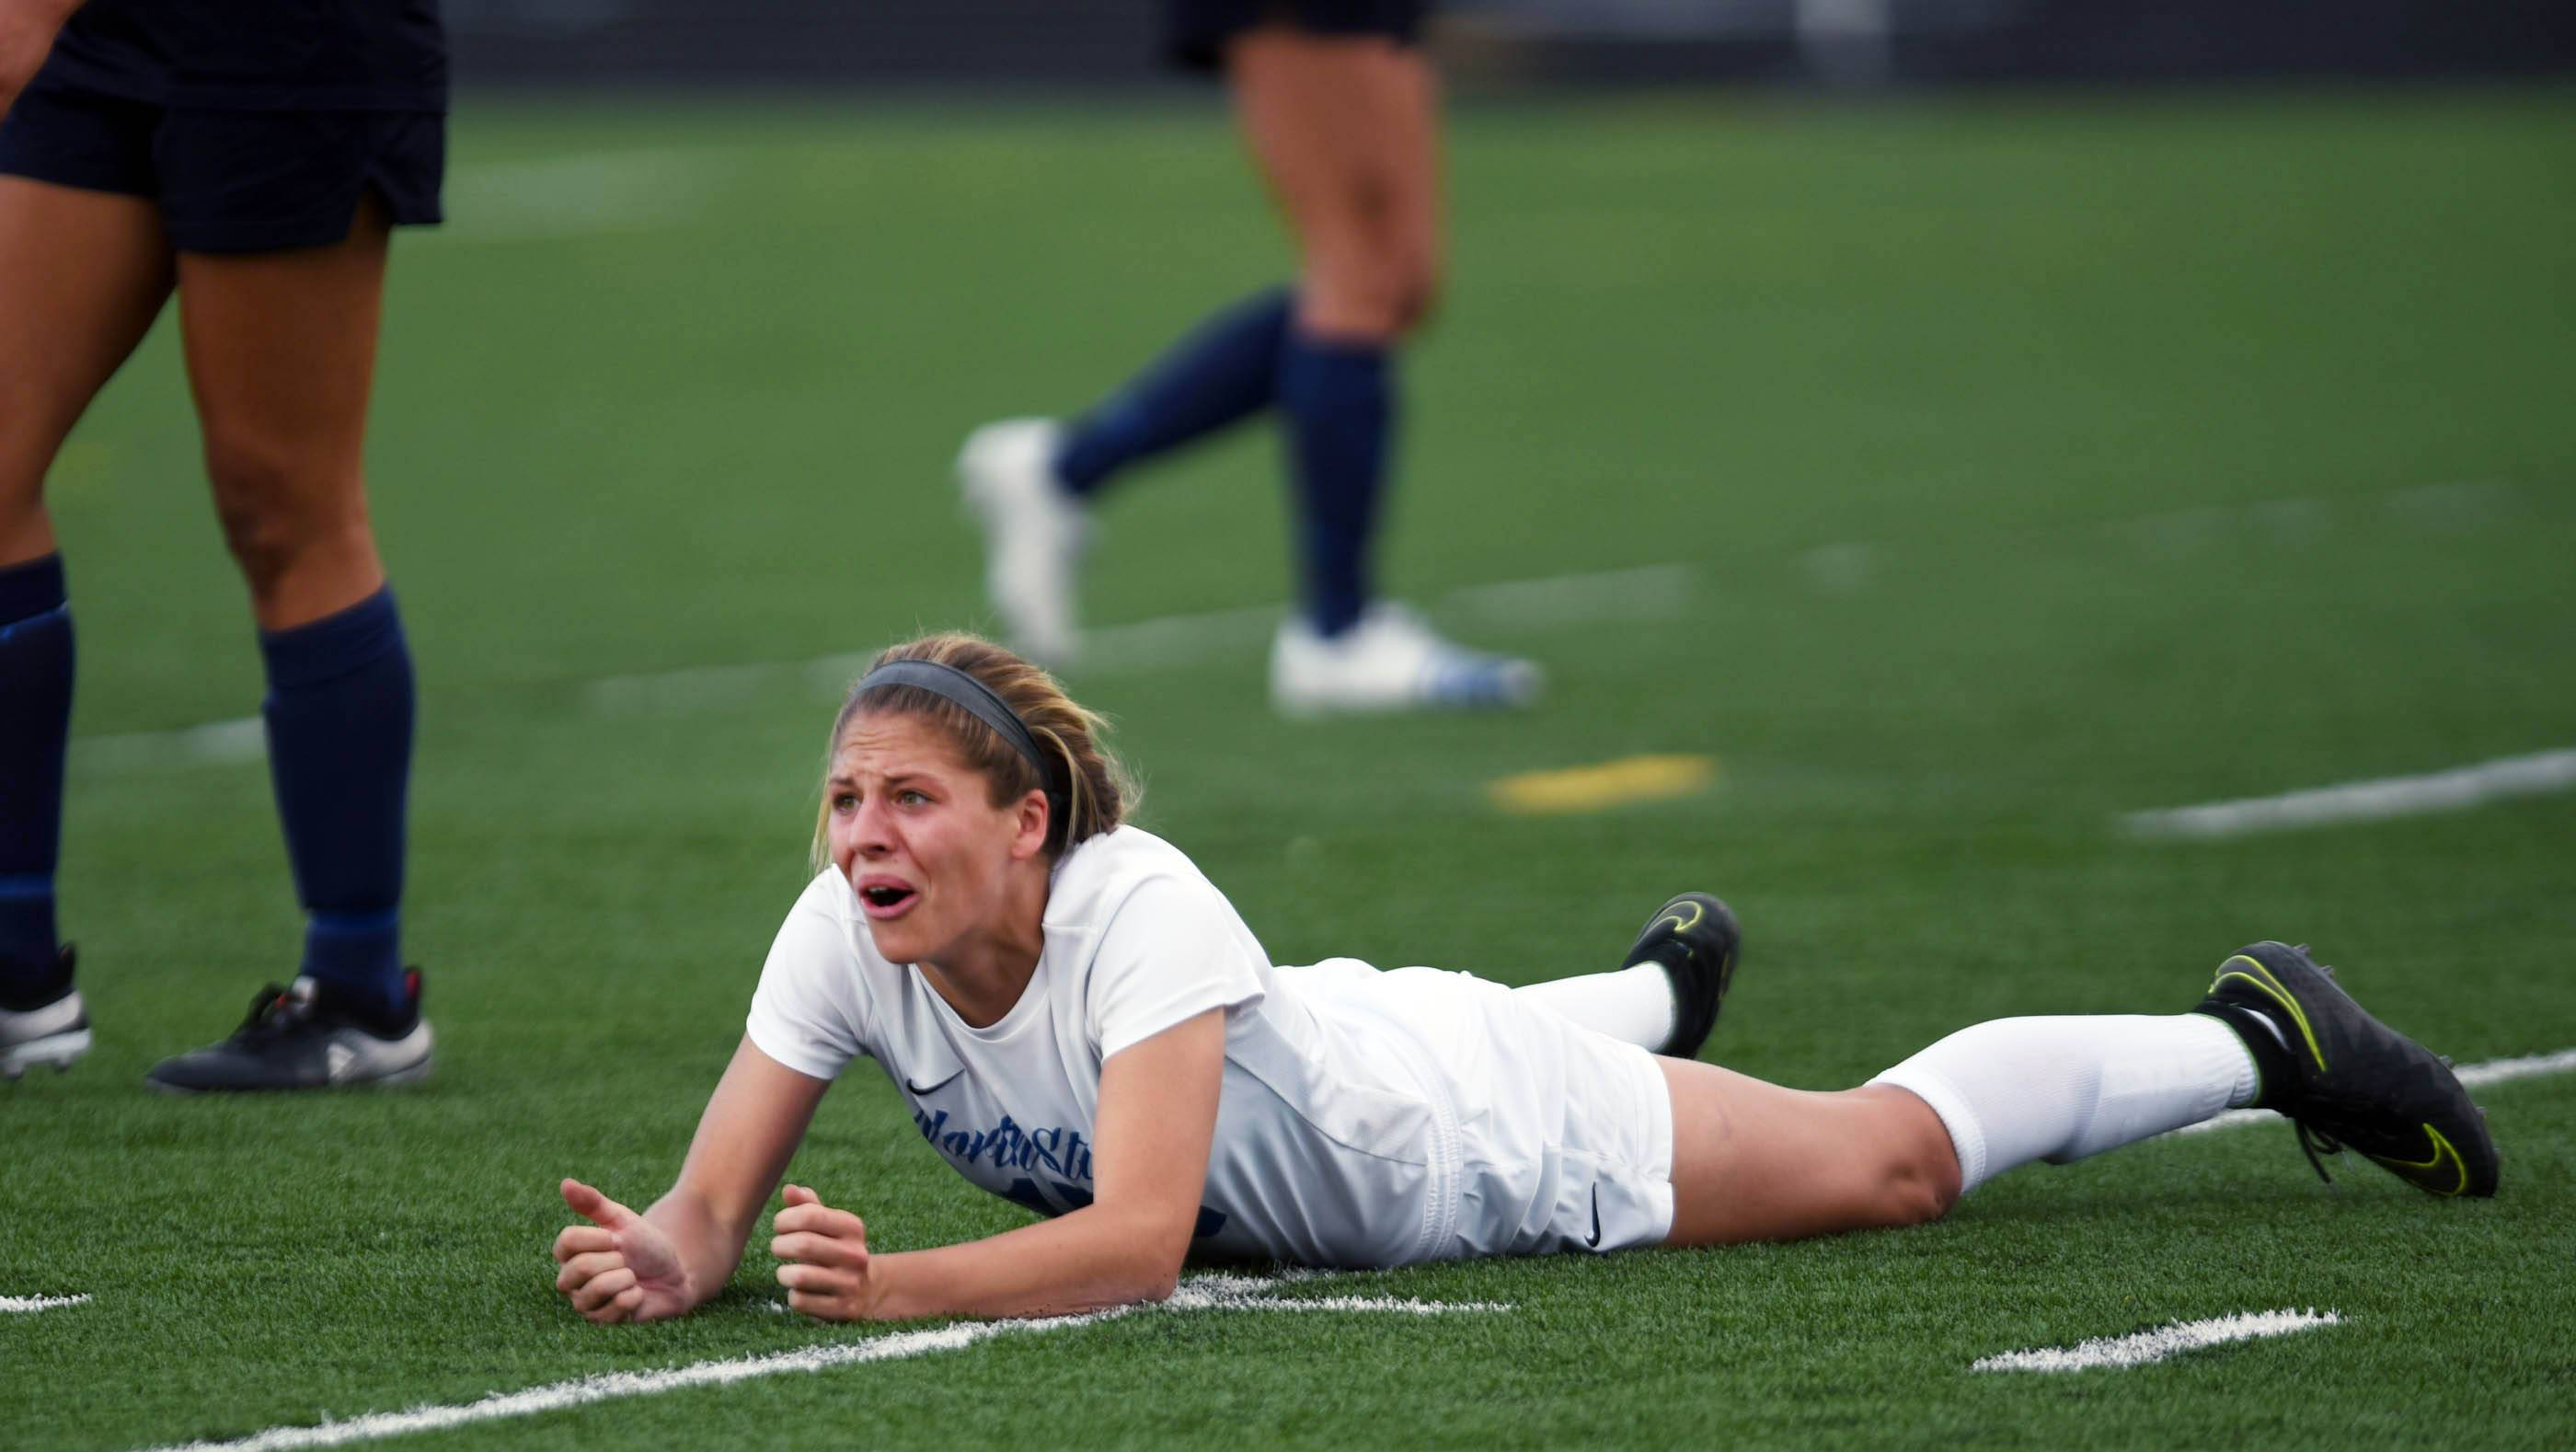 St. Charles North's Gia Wahlberg reacts to her shot that missed the net late in the game against New Trier Tuesday in the supersectional soccer game at Streamwood High School.